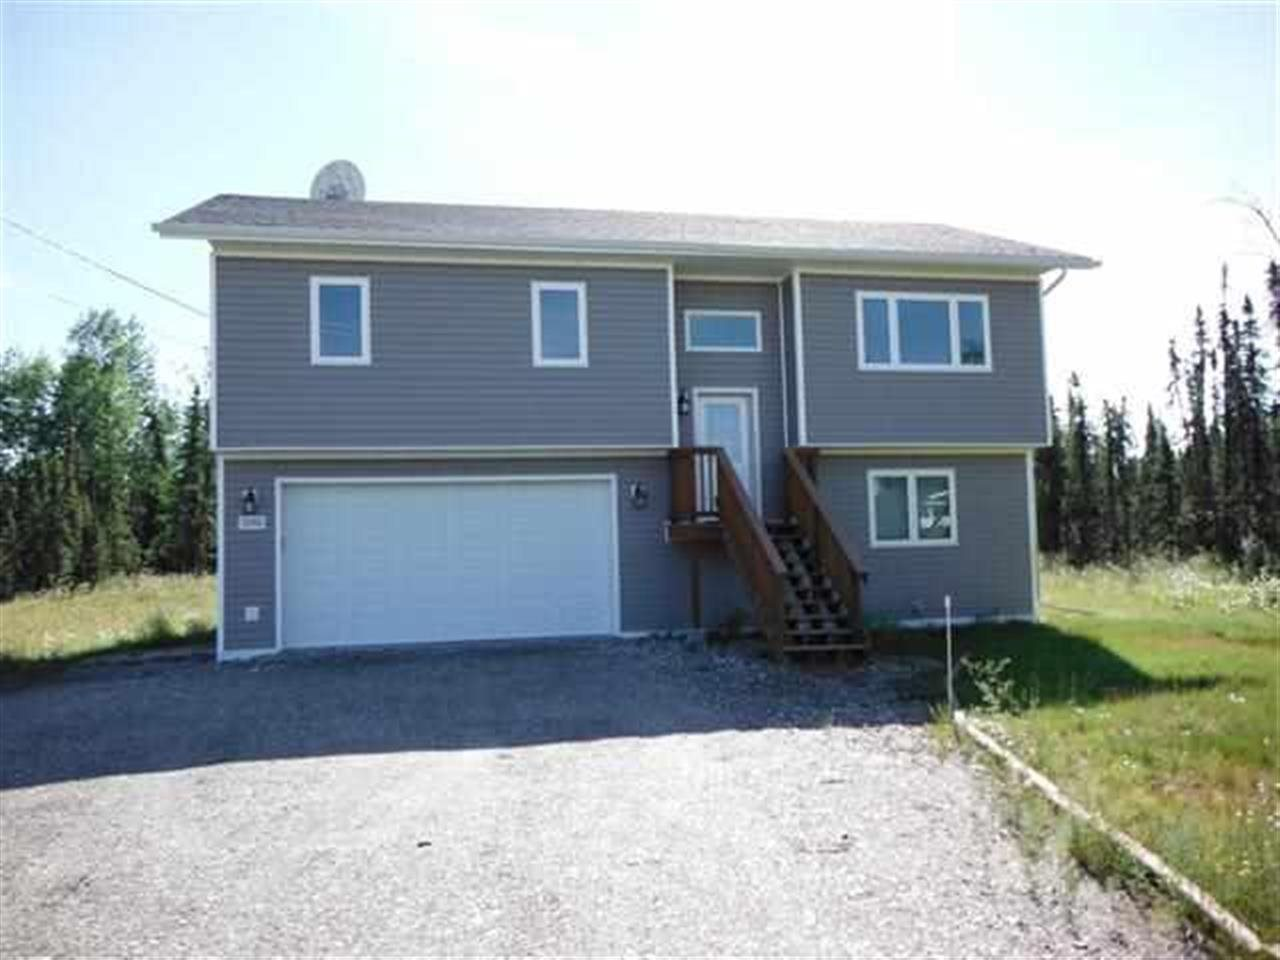 2280 Bordeaux St, North Pole, AK 99705